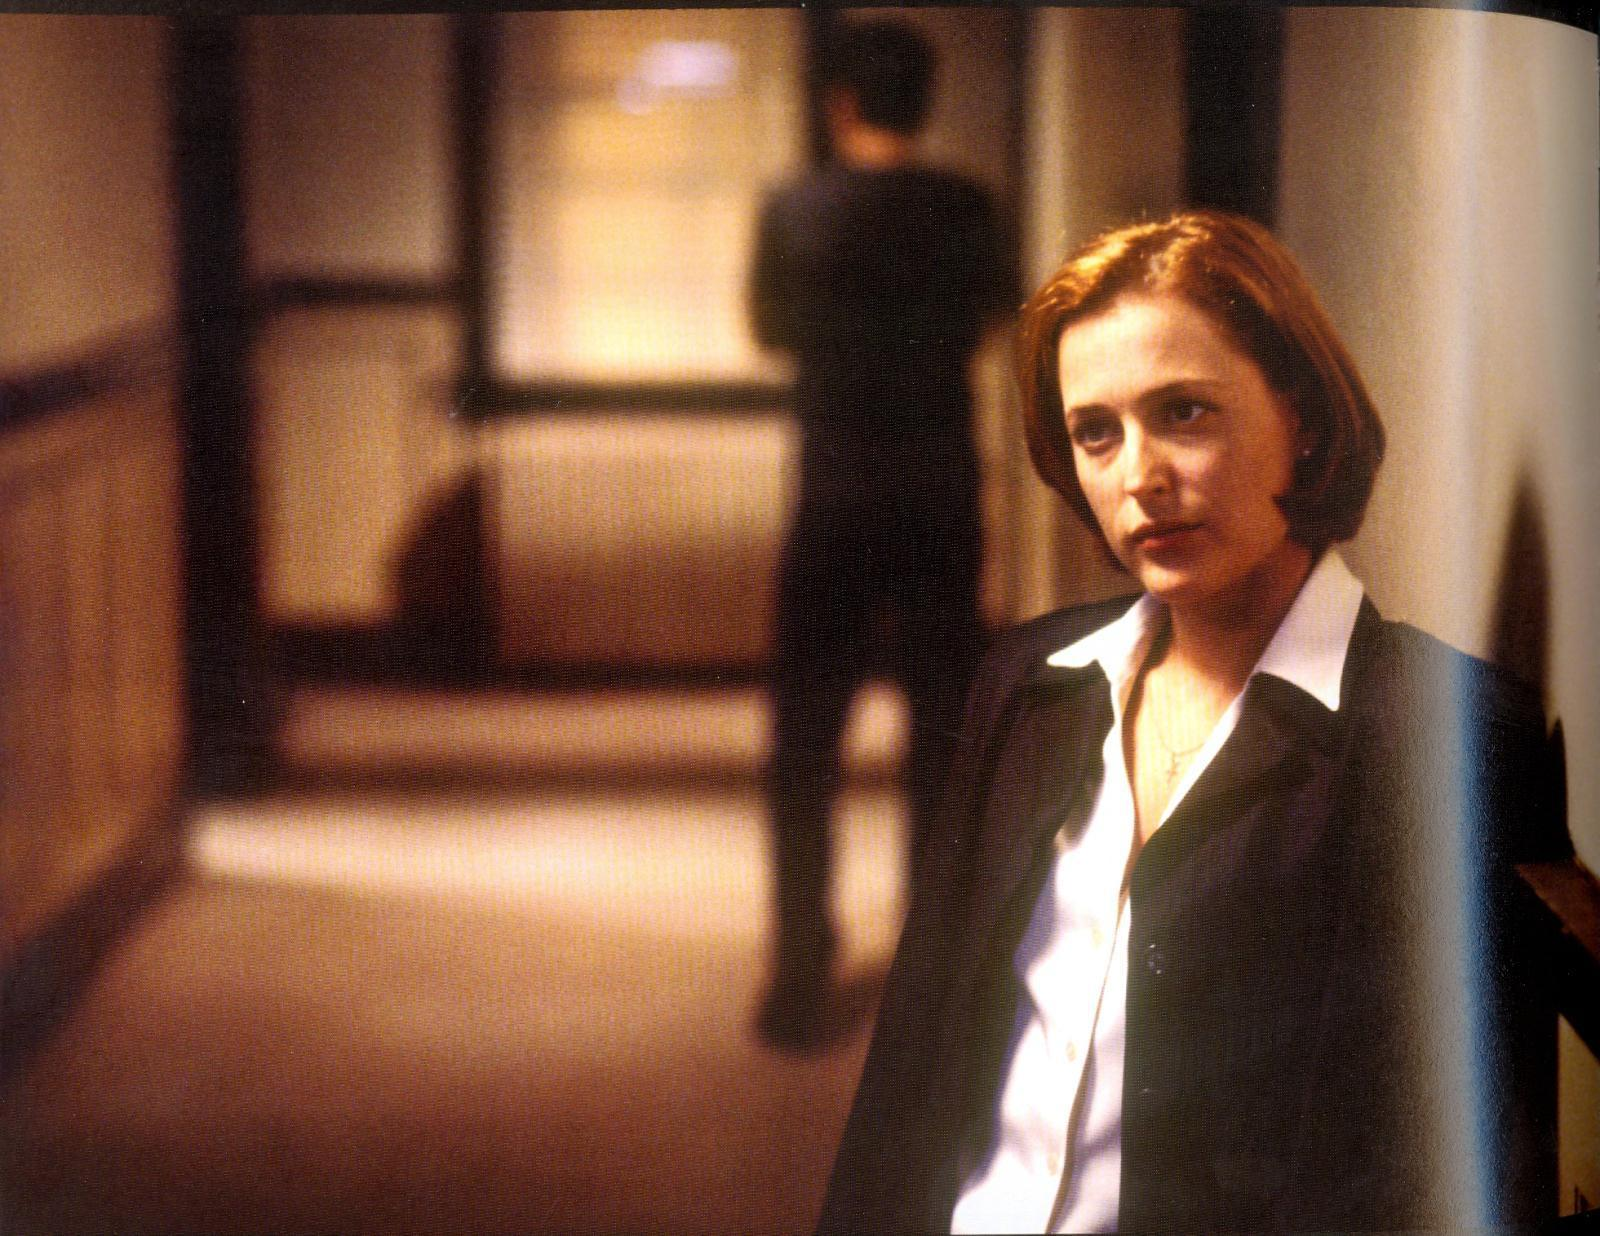 Scully the x files in a Japanese bath house